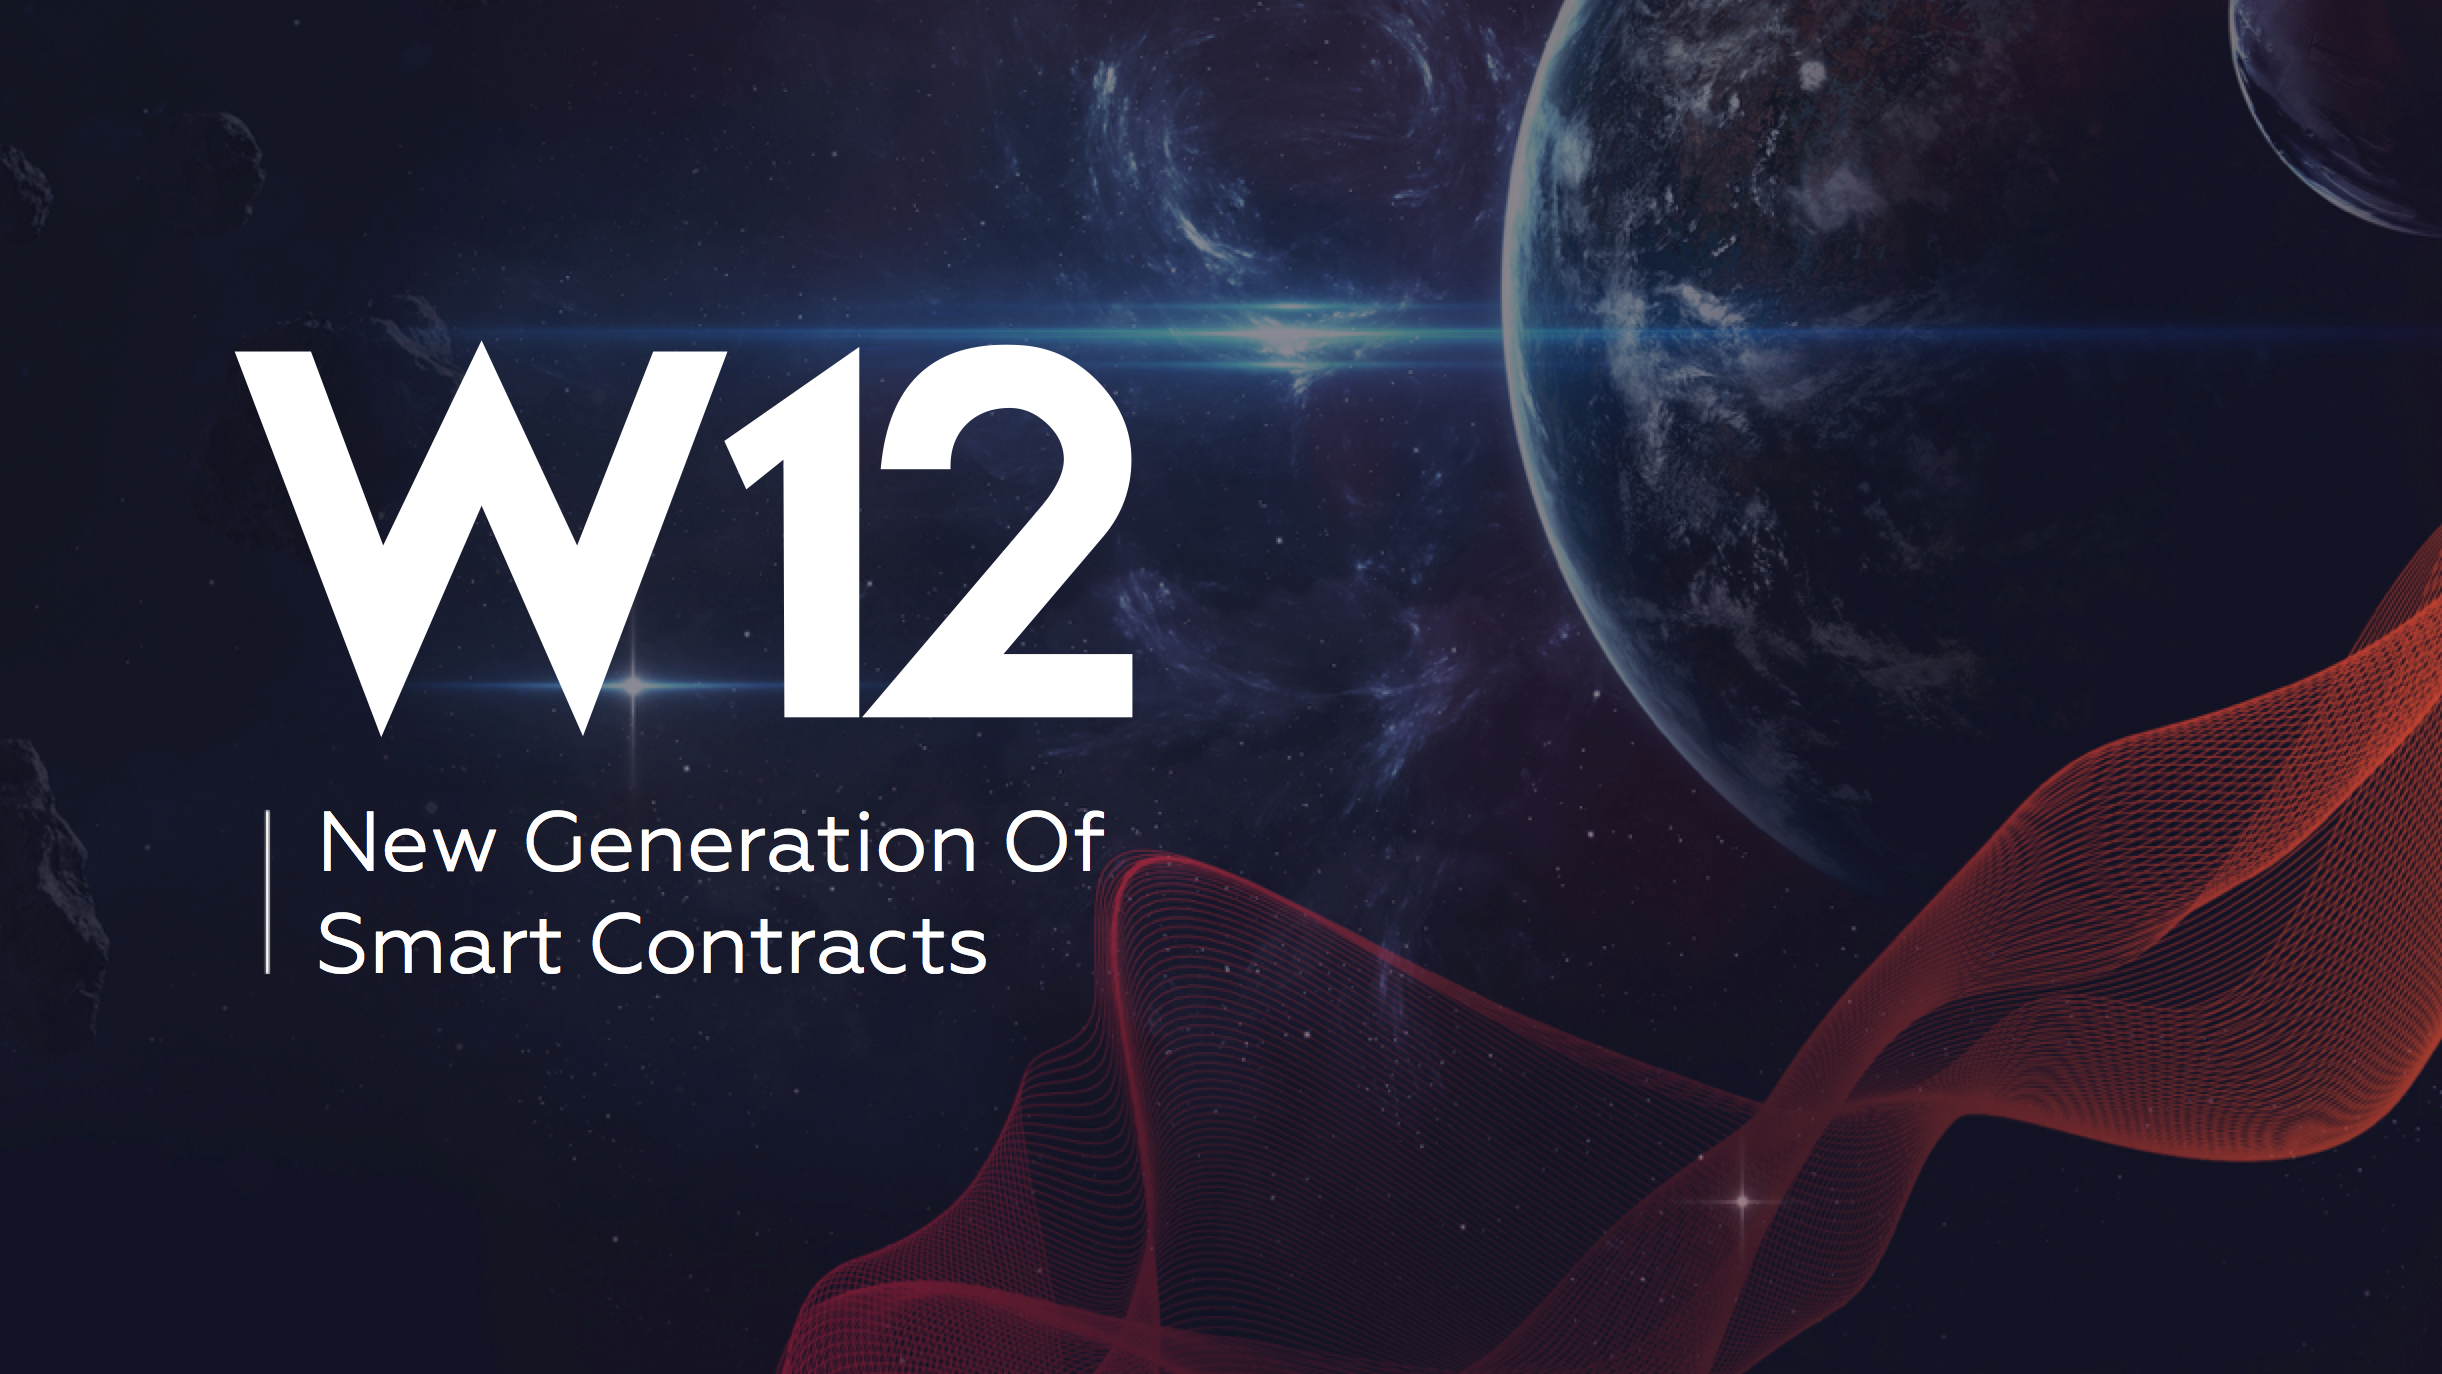 W12 - a Platform Raising New Generation of Smart Contracts - Winner at the World Blockchain Forum (NYC)